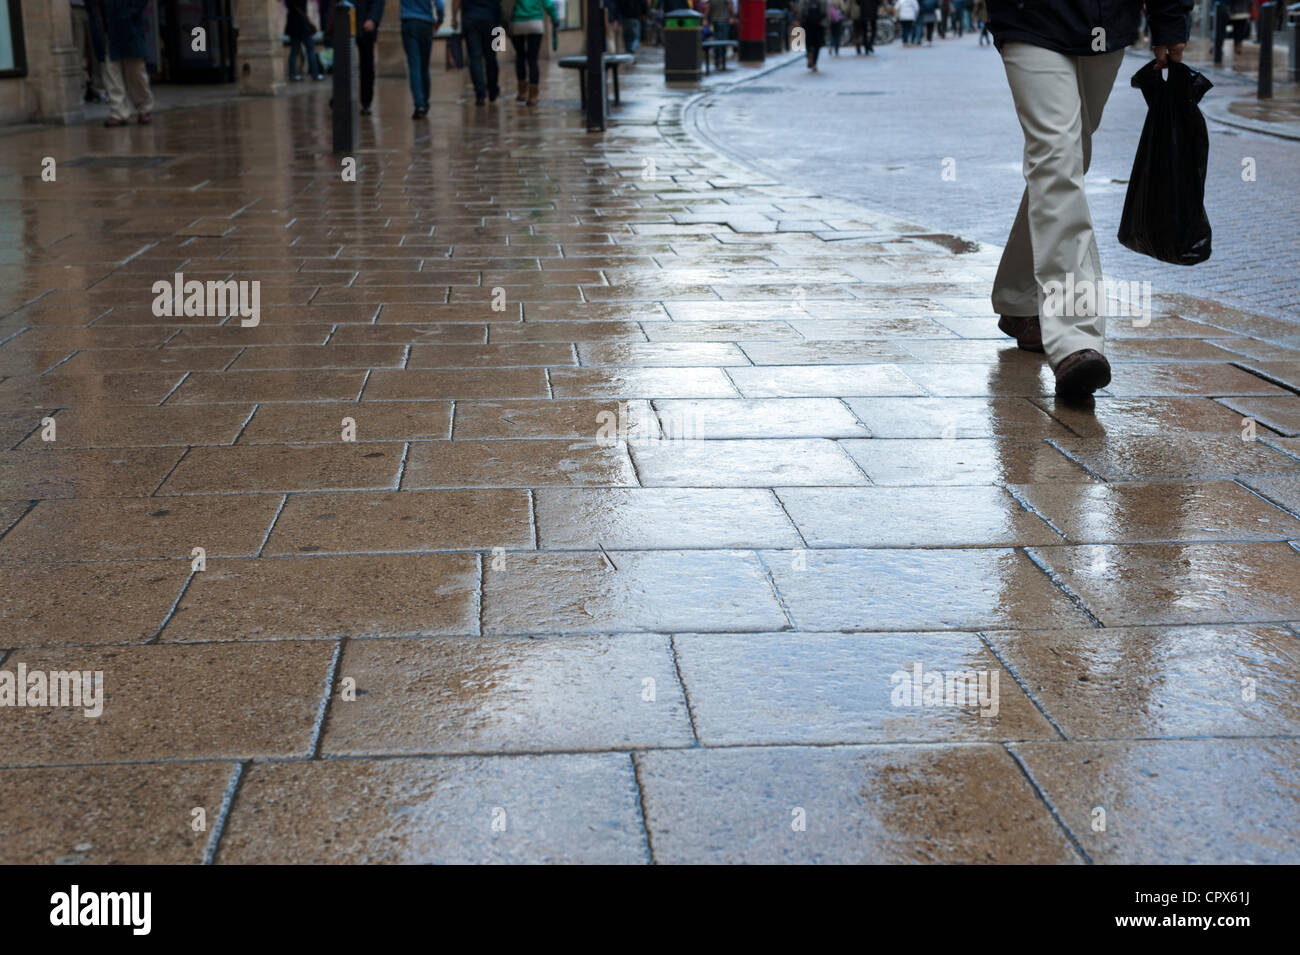 A wet pavement reflecting light on a raining day in Cambridge UK with legs and feet of people walking by. - Stock Image